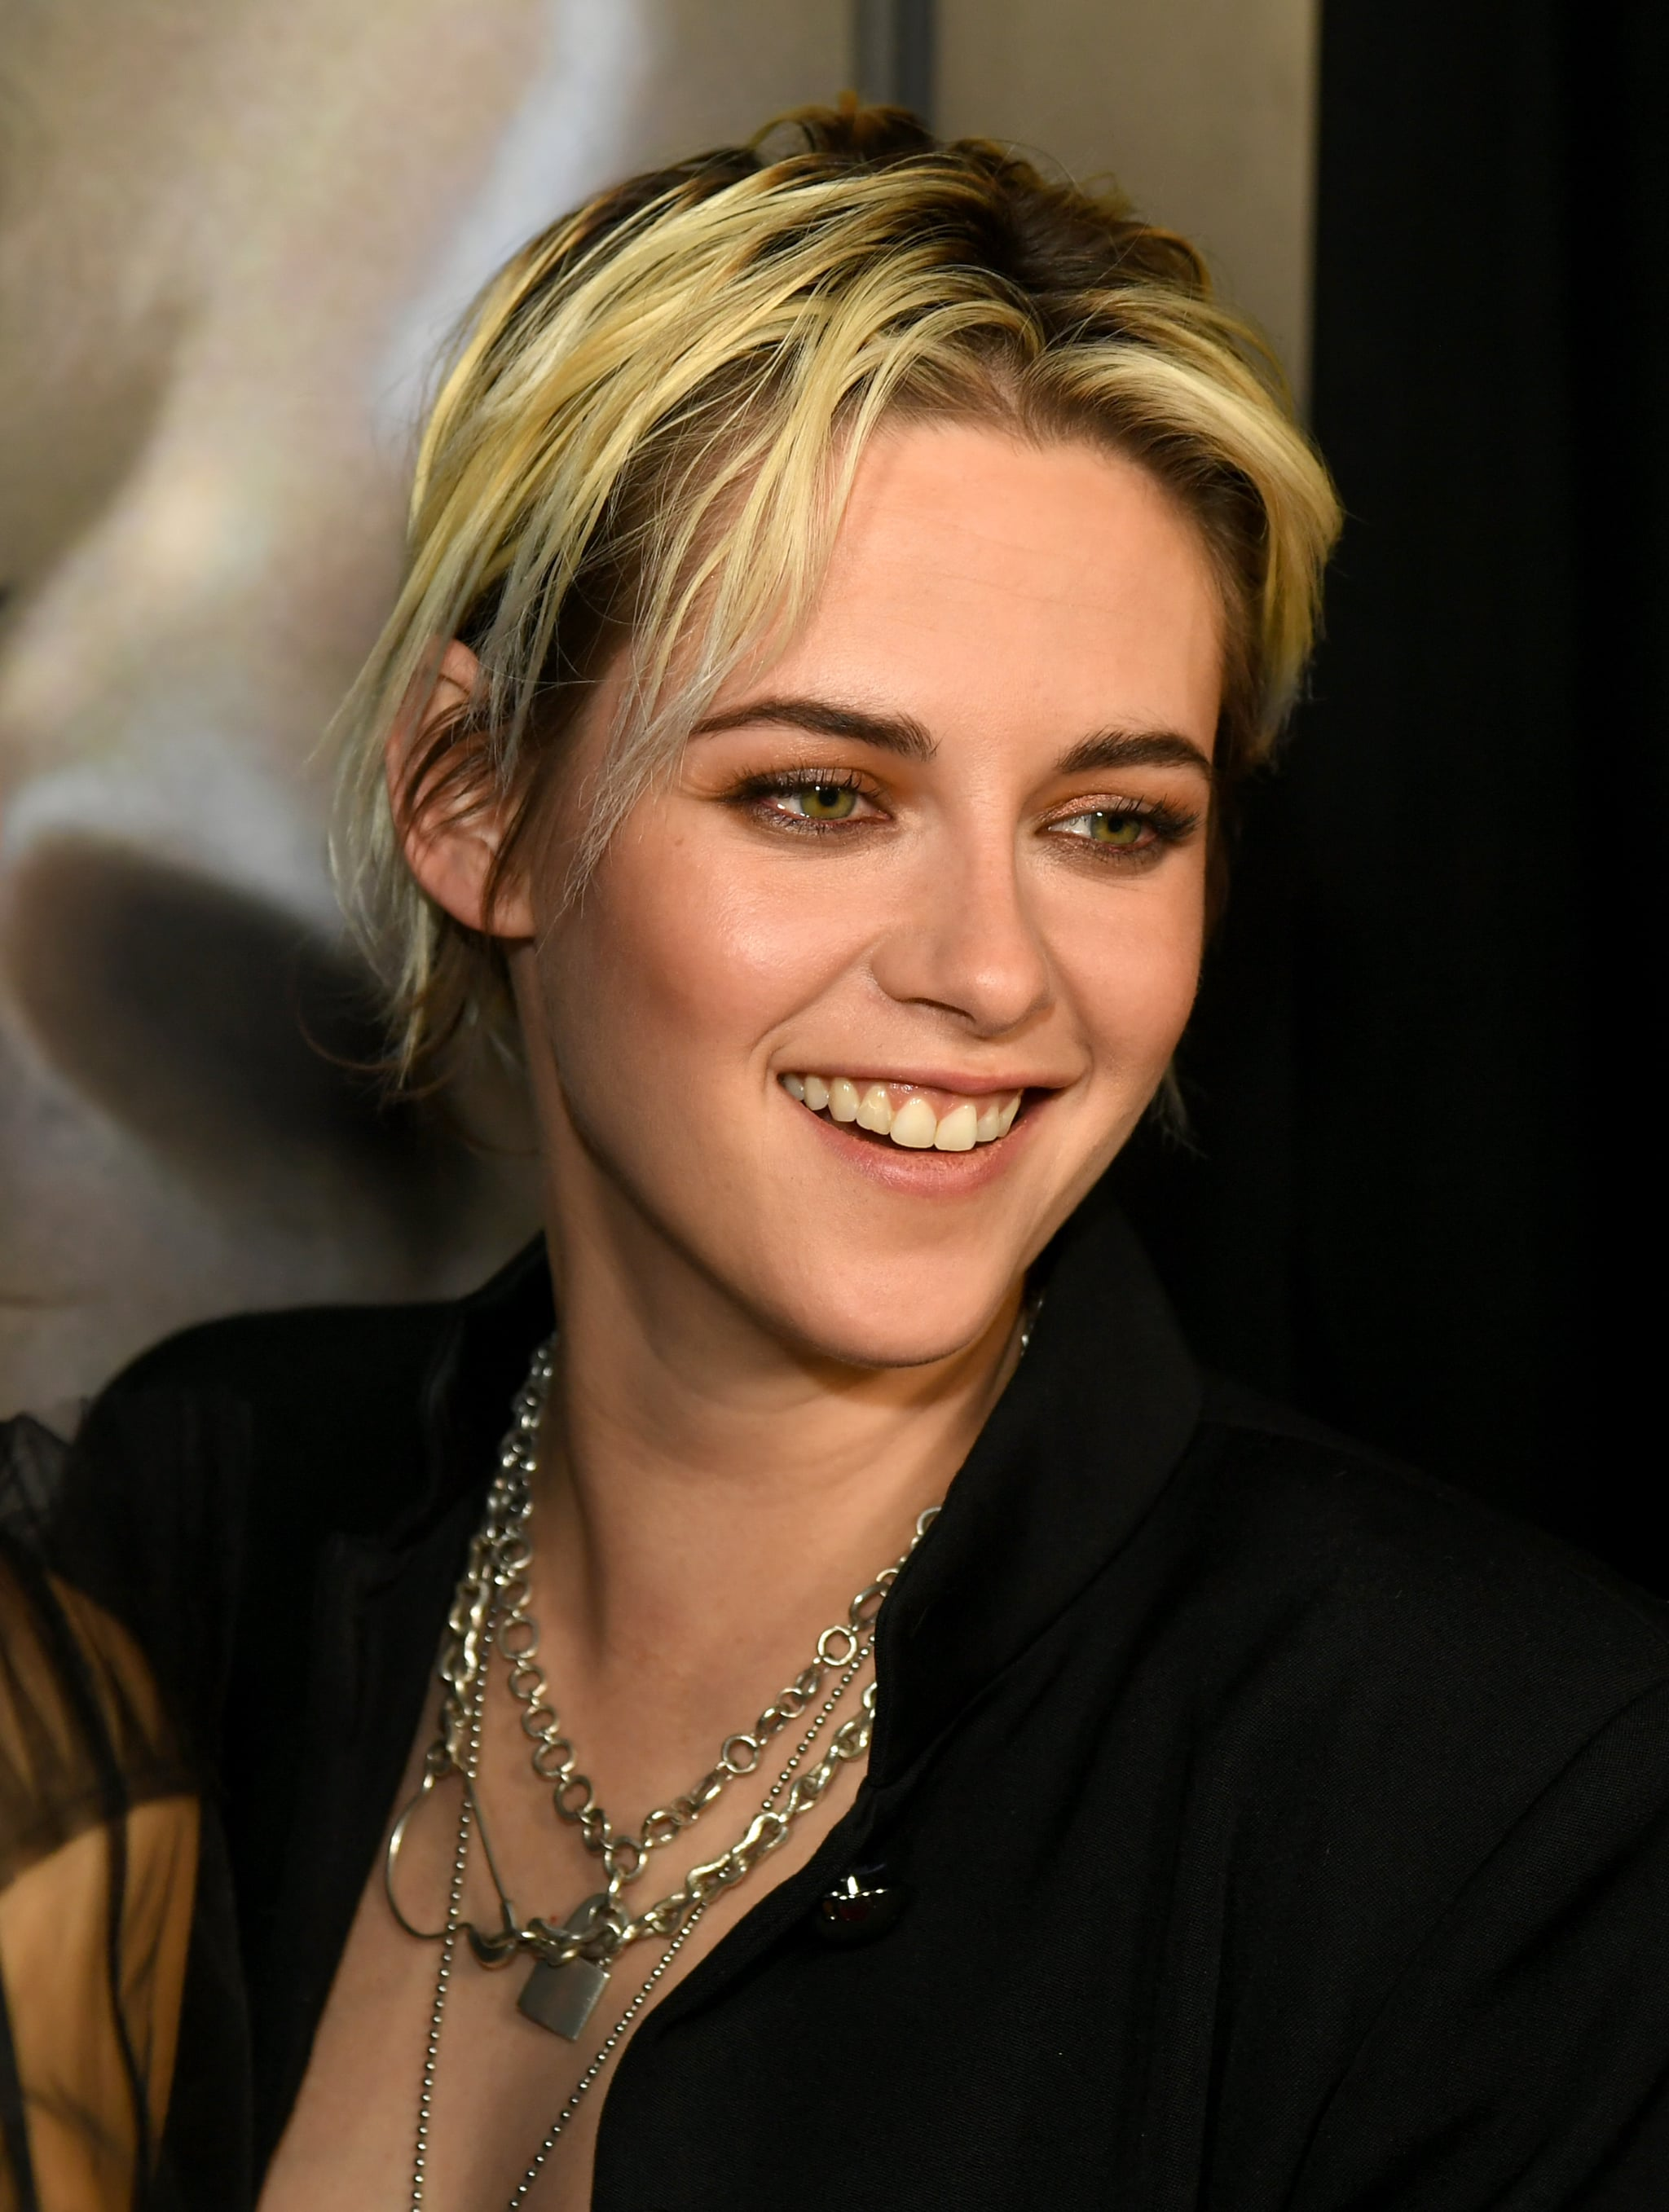 Makeup Beauty Hair Skin Yep Kristen Stewart S New Blond Hair Color Is A Total Mess And That S The Point Popsugar Beauty Middle East Photo 7